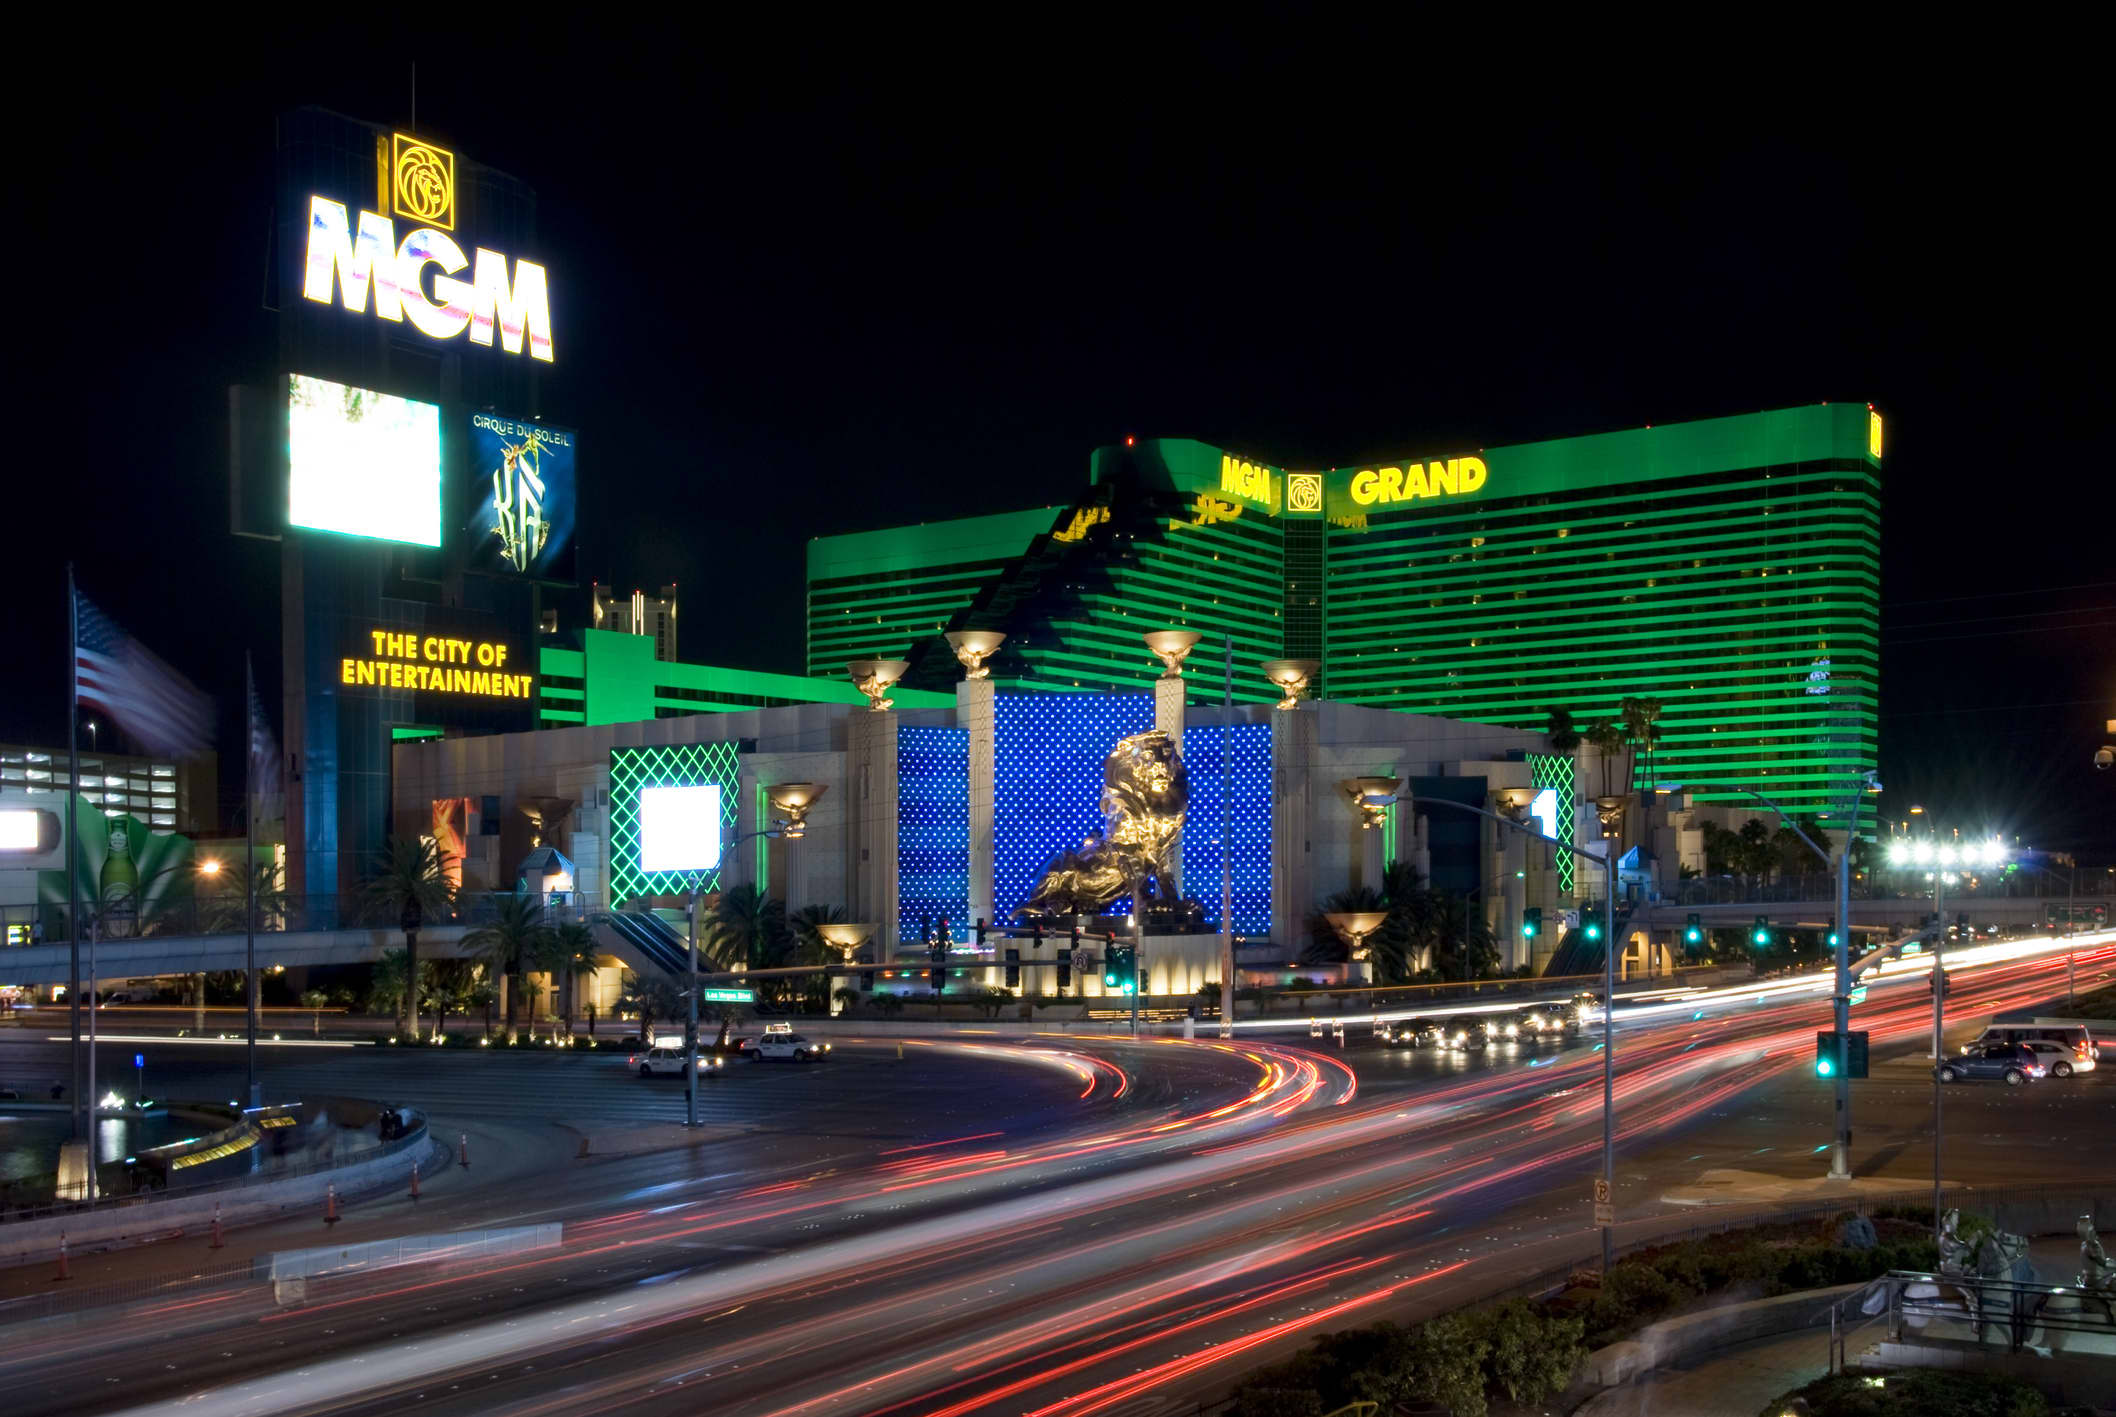 5 steps to take if you suspect you were affected by the MGM resort data breach